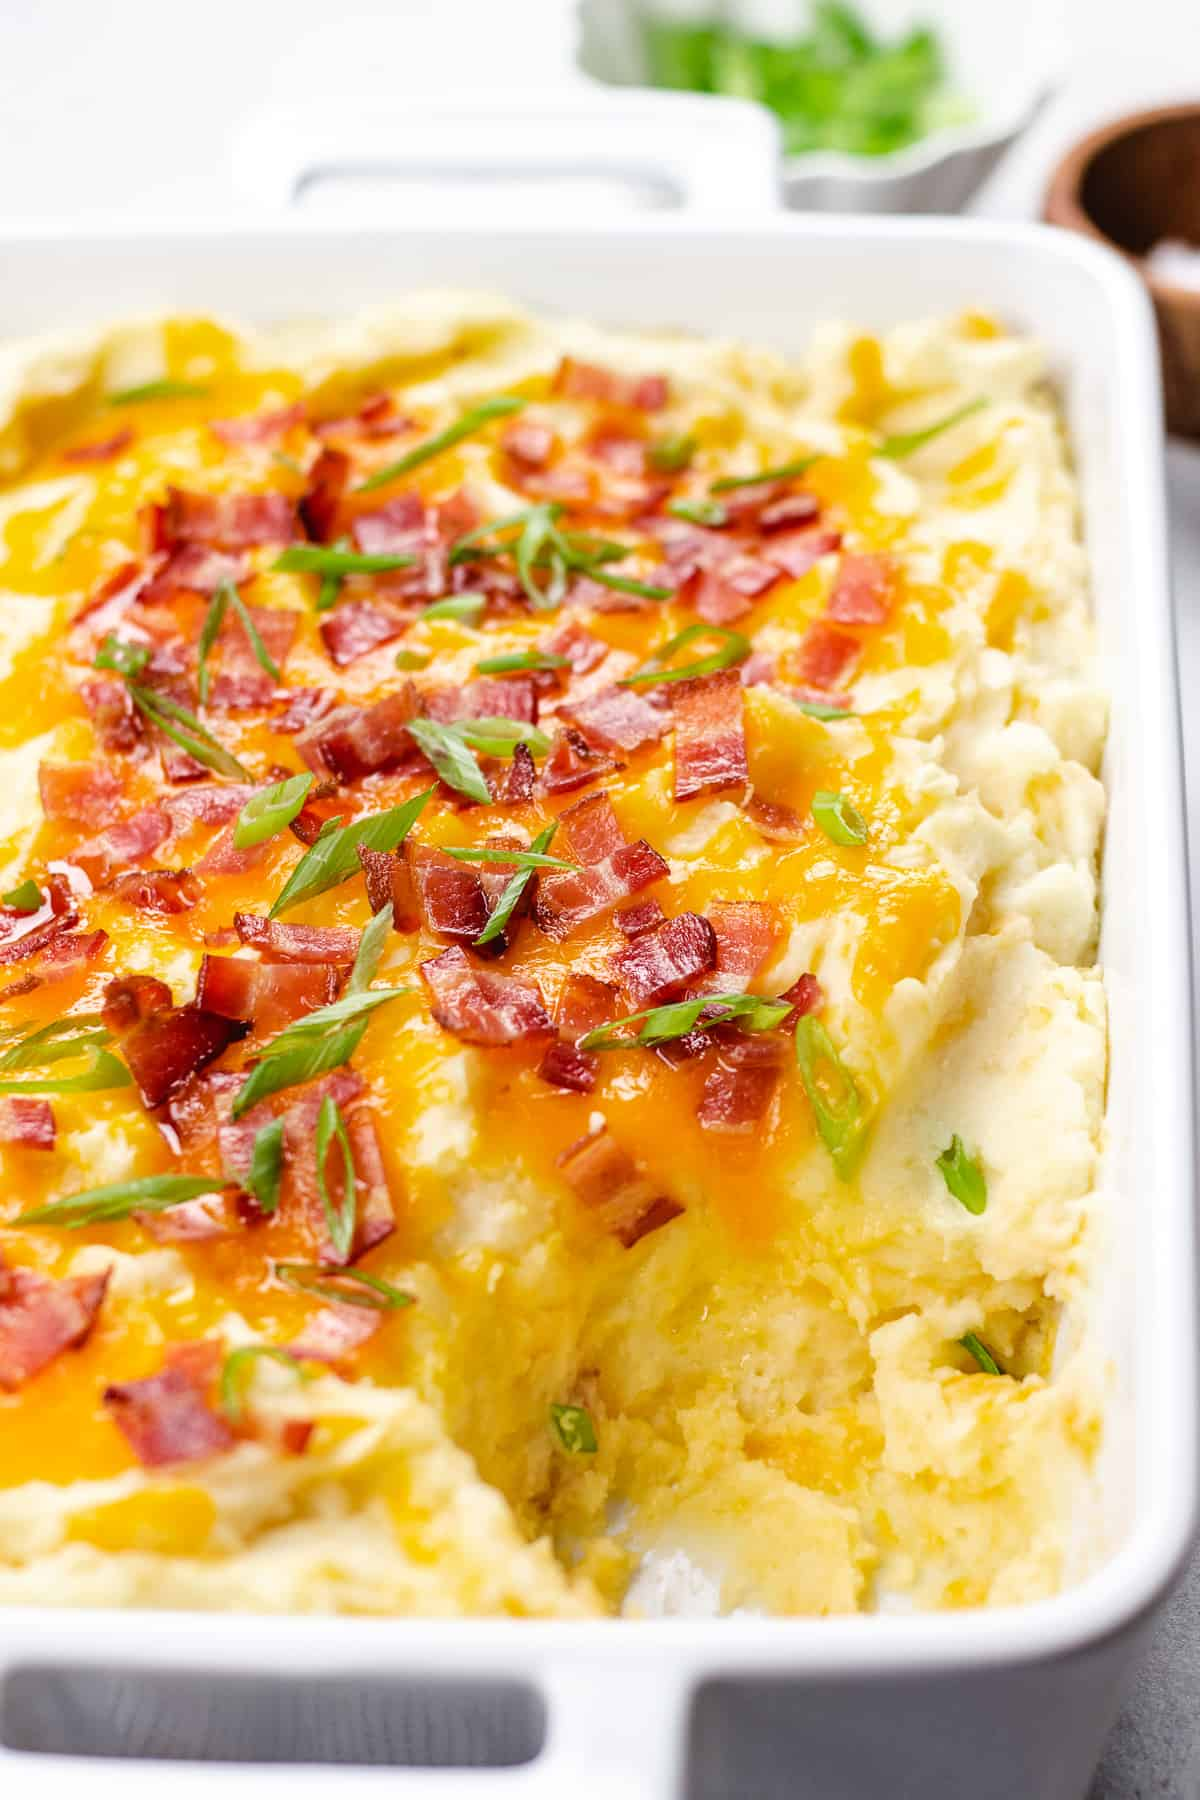 Mashed potatoes topped with cheese and bacon in a white casserole.